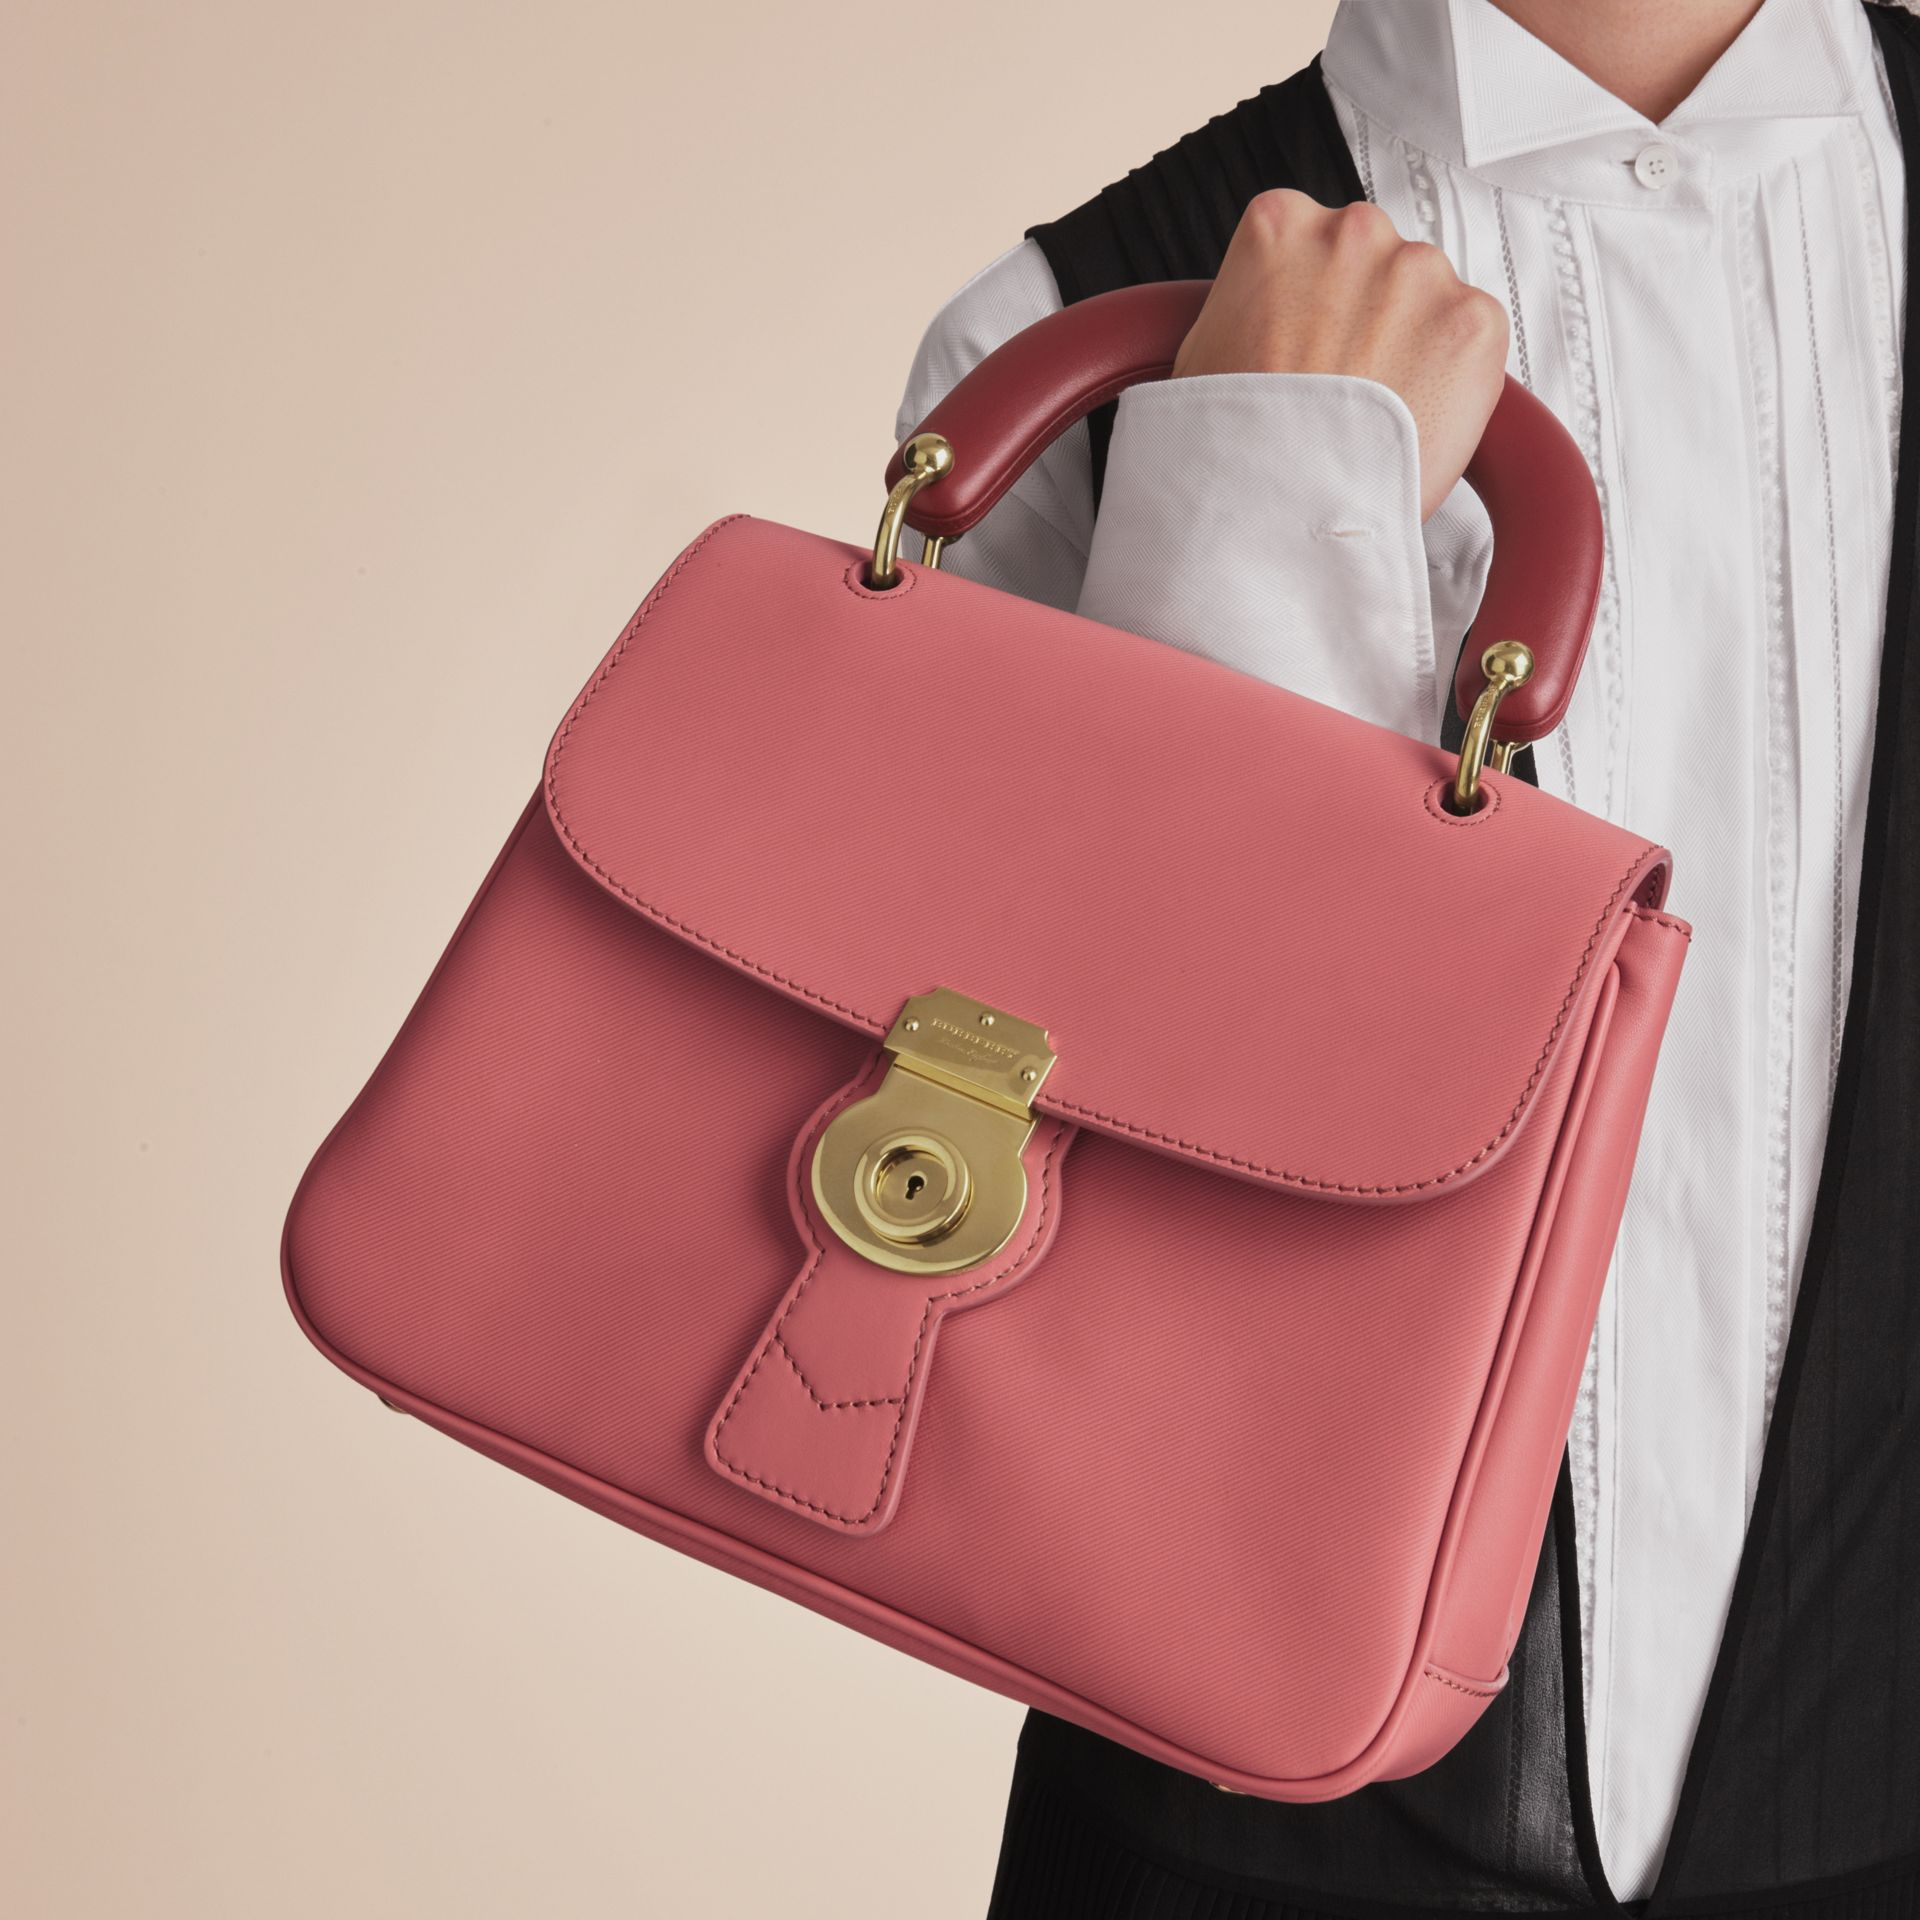 The Medium DK88 Top Handle Bag in Blossom Pink - Women | Burberry United Kingdom - gallery image 5